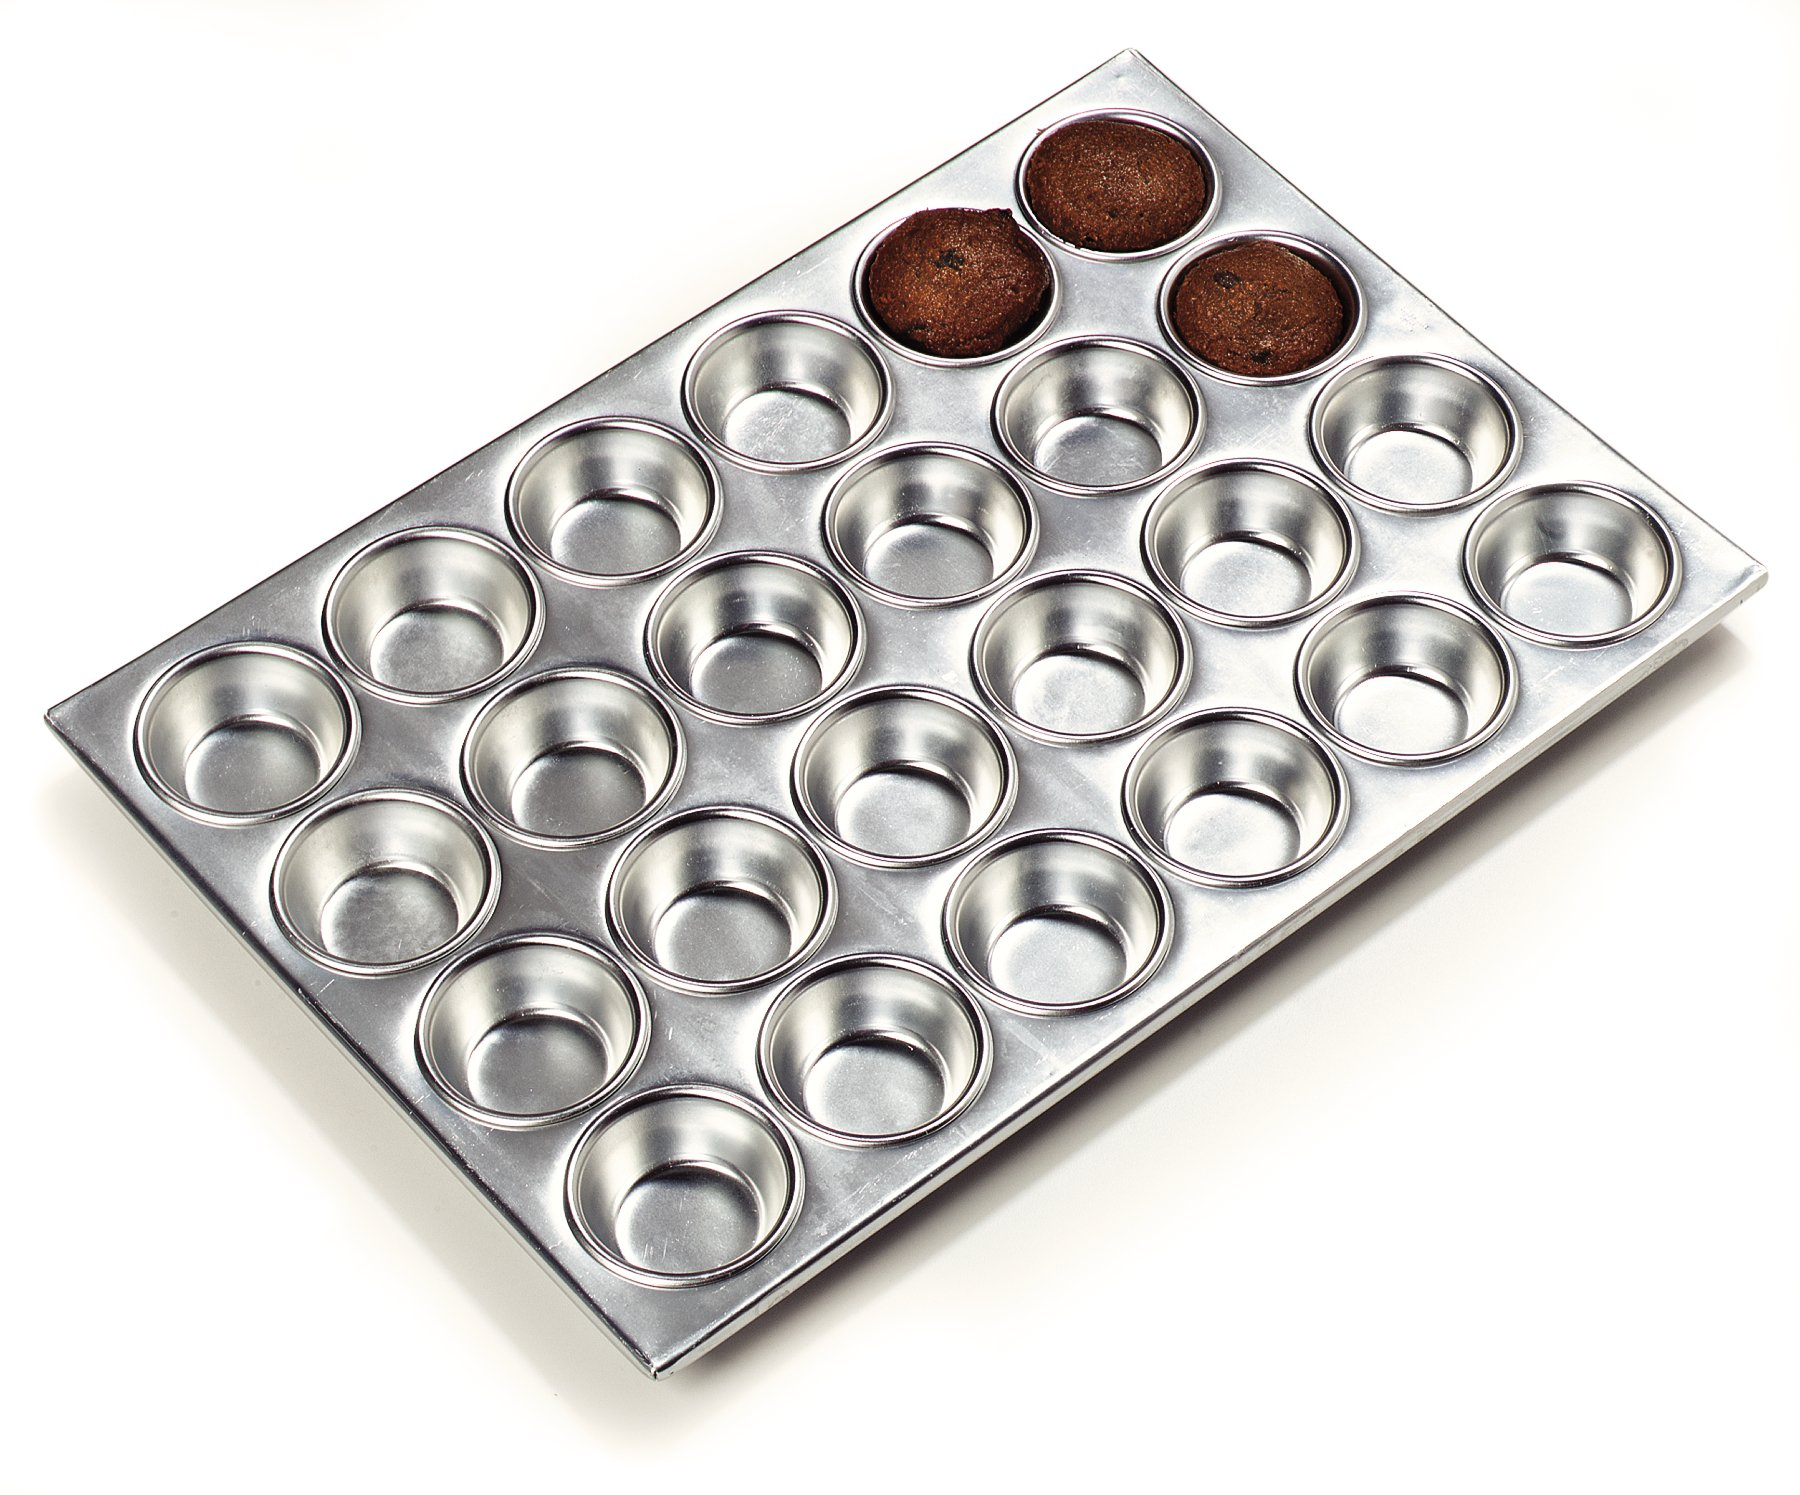 Carlisle 602424 Aluminum 3003 24 Cup Muffin Pan, 20.5'' Length x 14'' Width, 3-oz. Capacity (Case of 12)